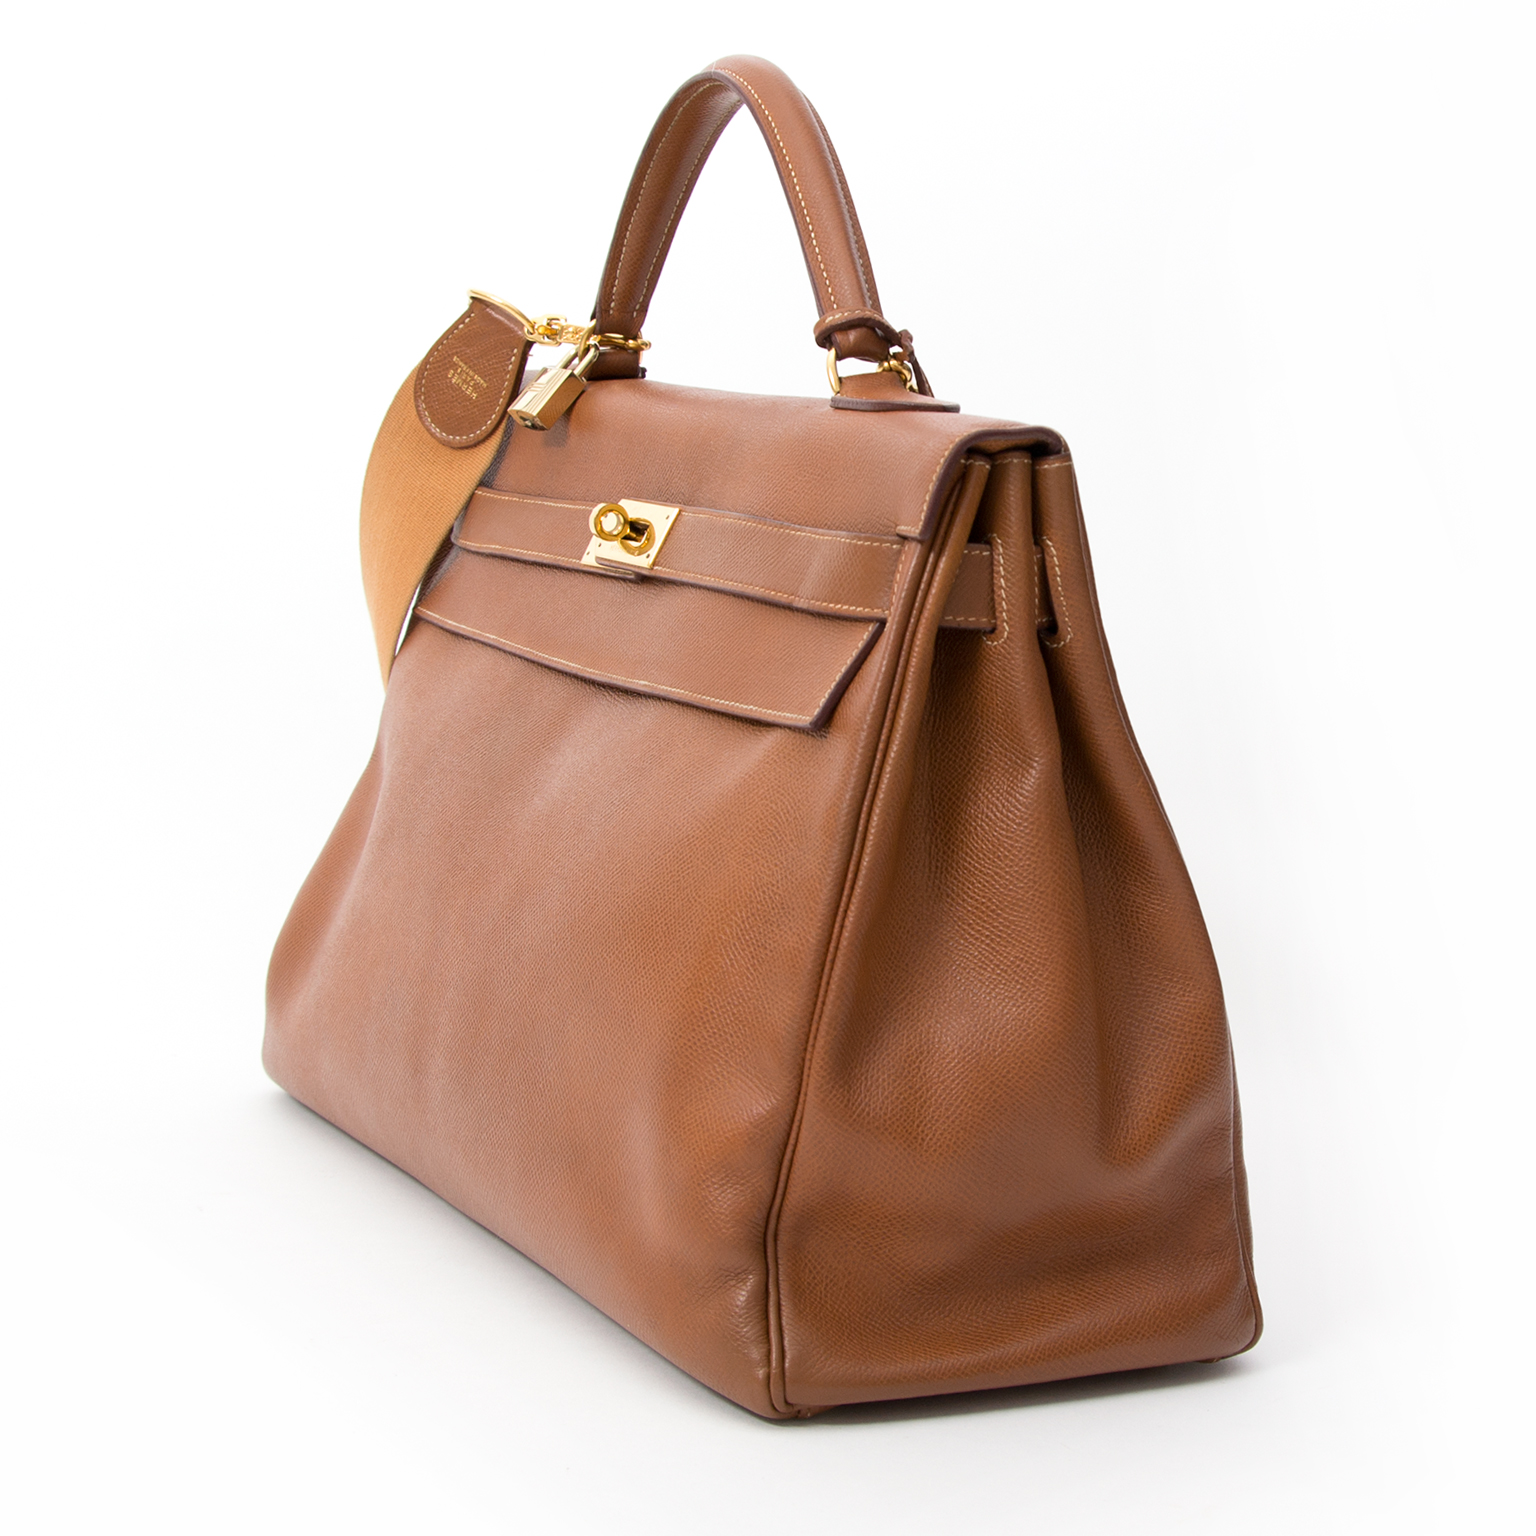 e-shop labellov online tweedehands vintage designer luxe Hermes Kelly gold color